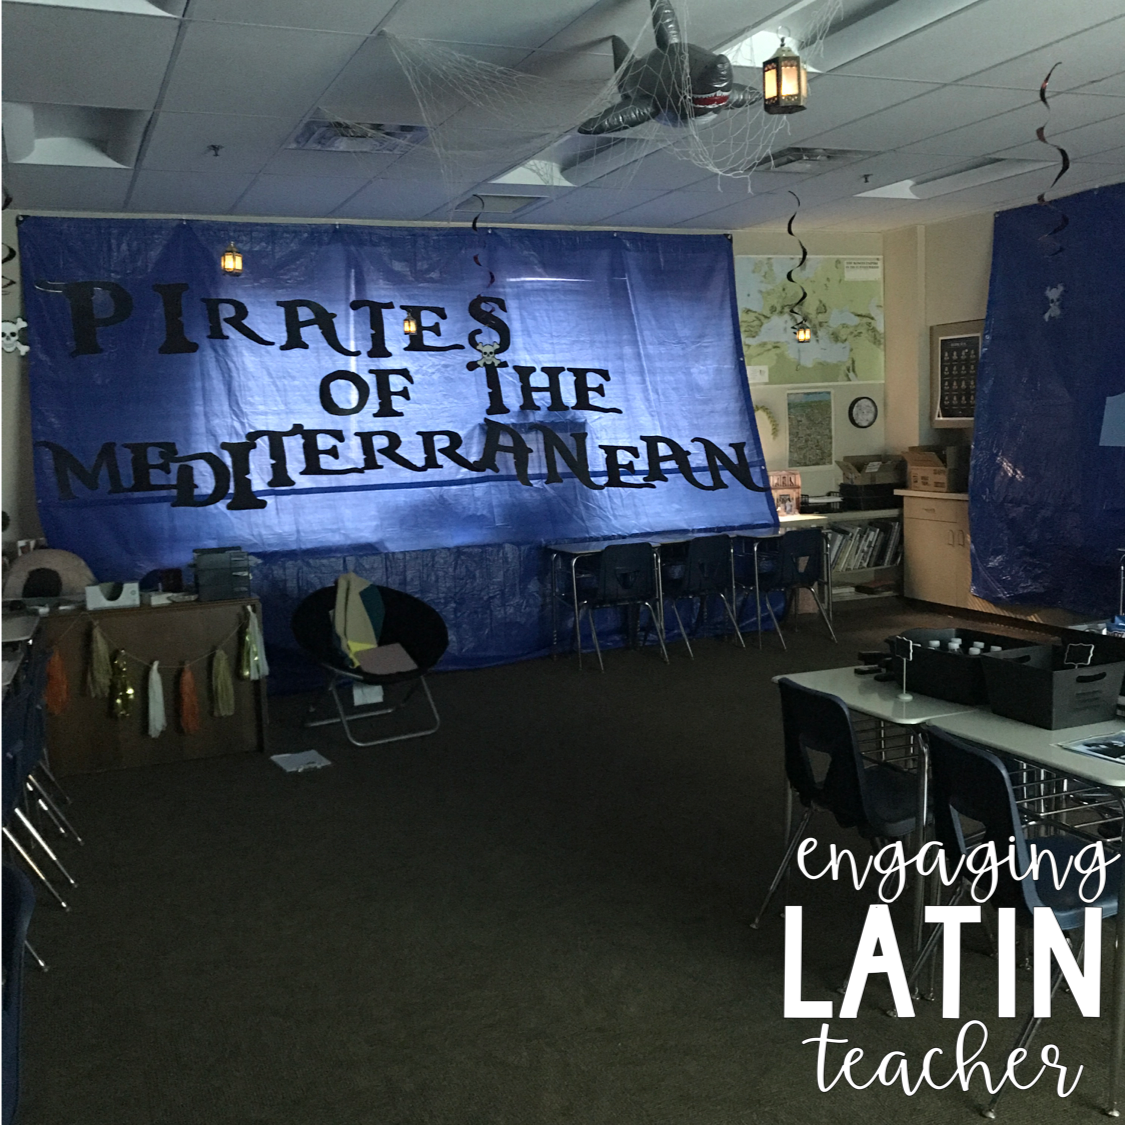 "Desks and chairs set up in table arrangements with large banner that reads ""Pirates of the Mediterranean"""